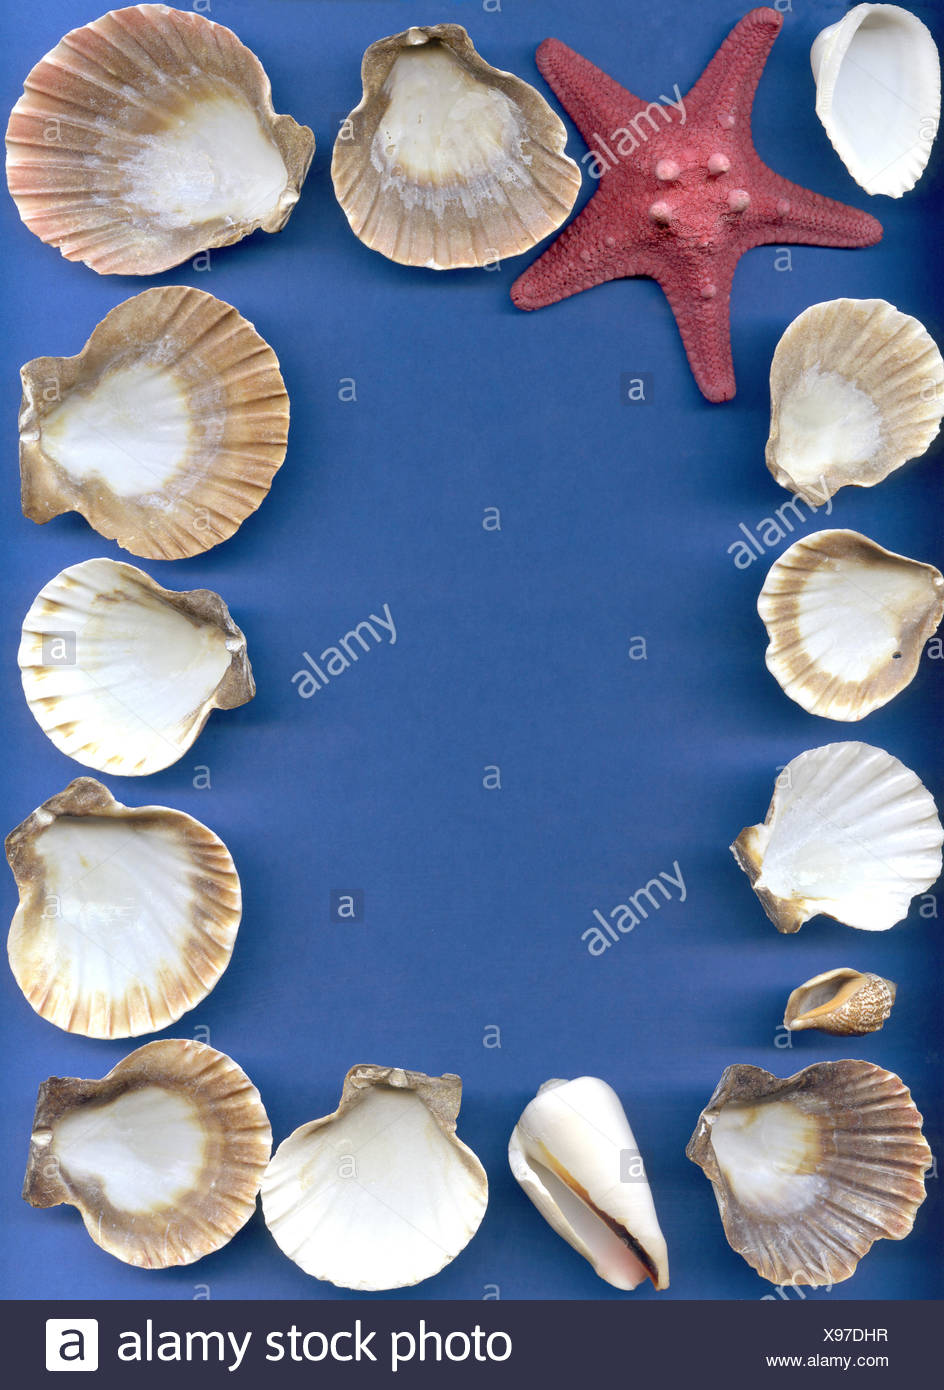 Sea bowls of a mollusk and starfish - Stock Image